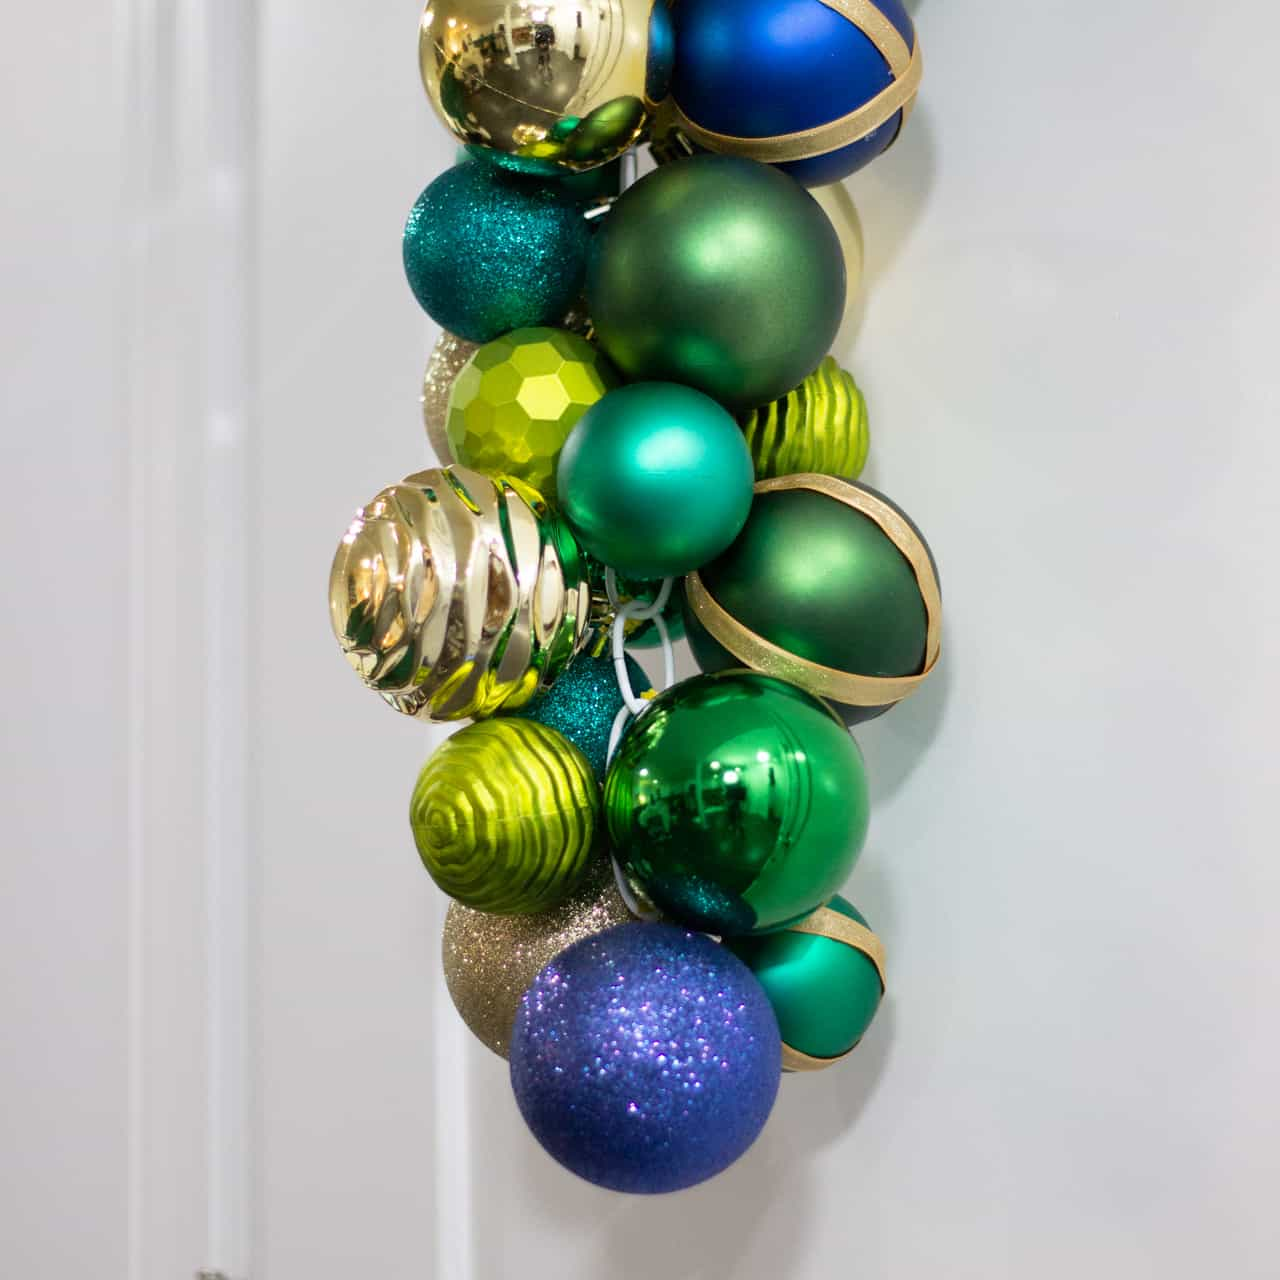 Blue, green, and gold ornaments hung on a white door.